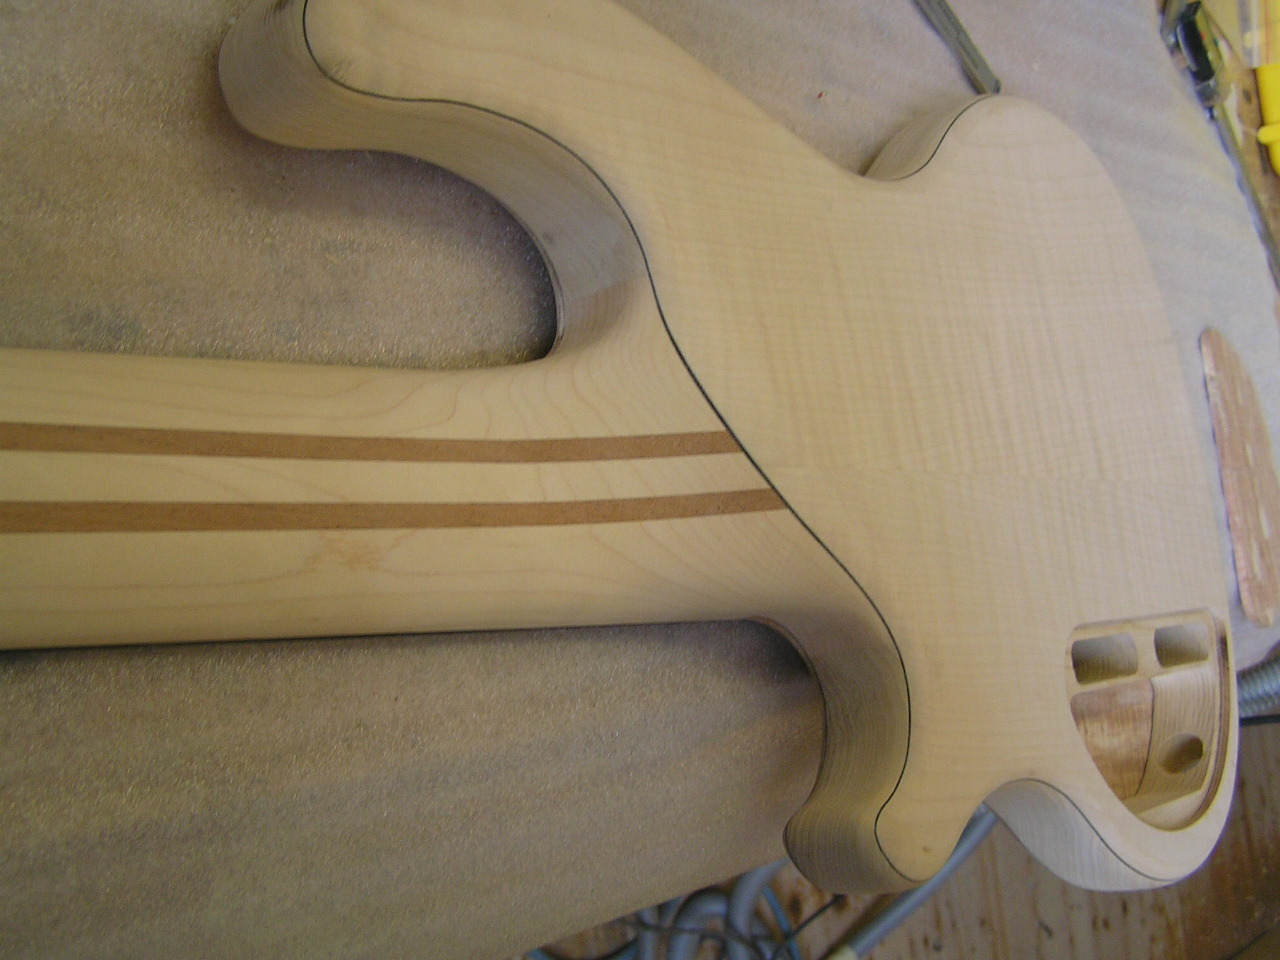 Still sanding. - At some point it almost looks like a bass, but there is still a lot missing.